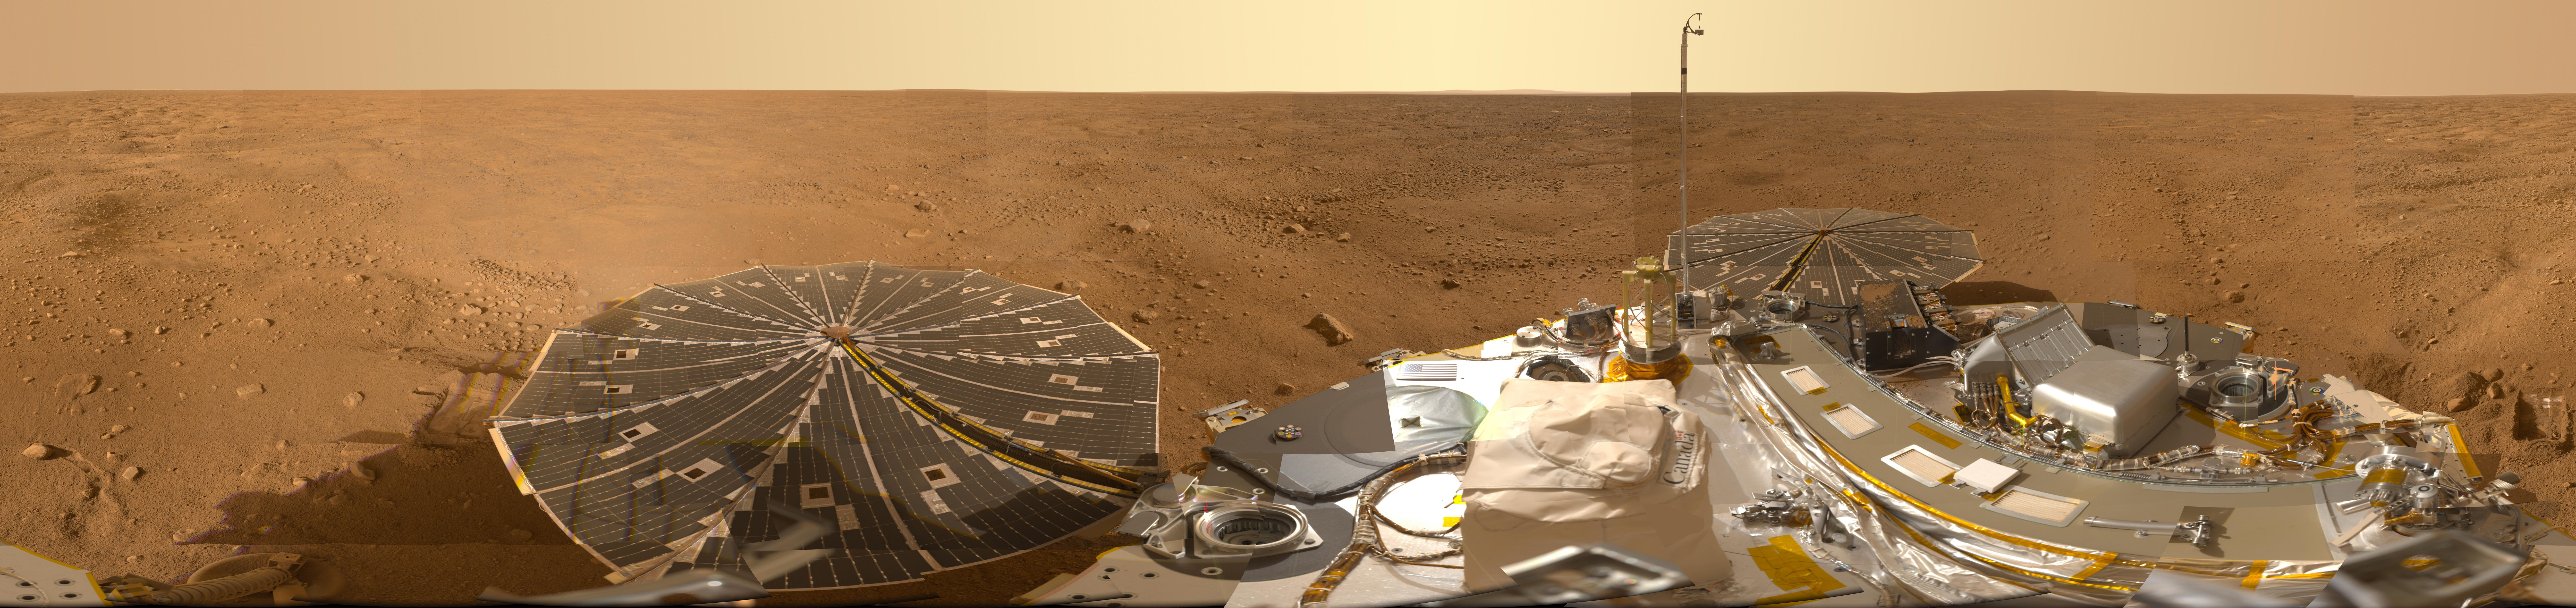 Apod 2011 March 13 A Mars Panorama From The Phoenix Lander